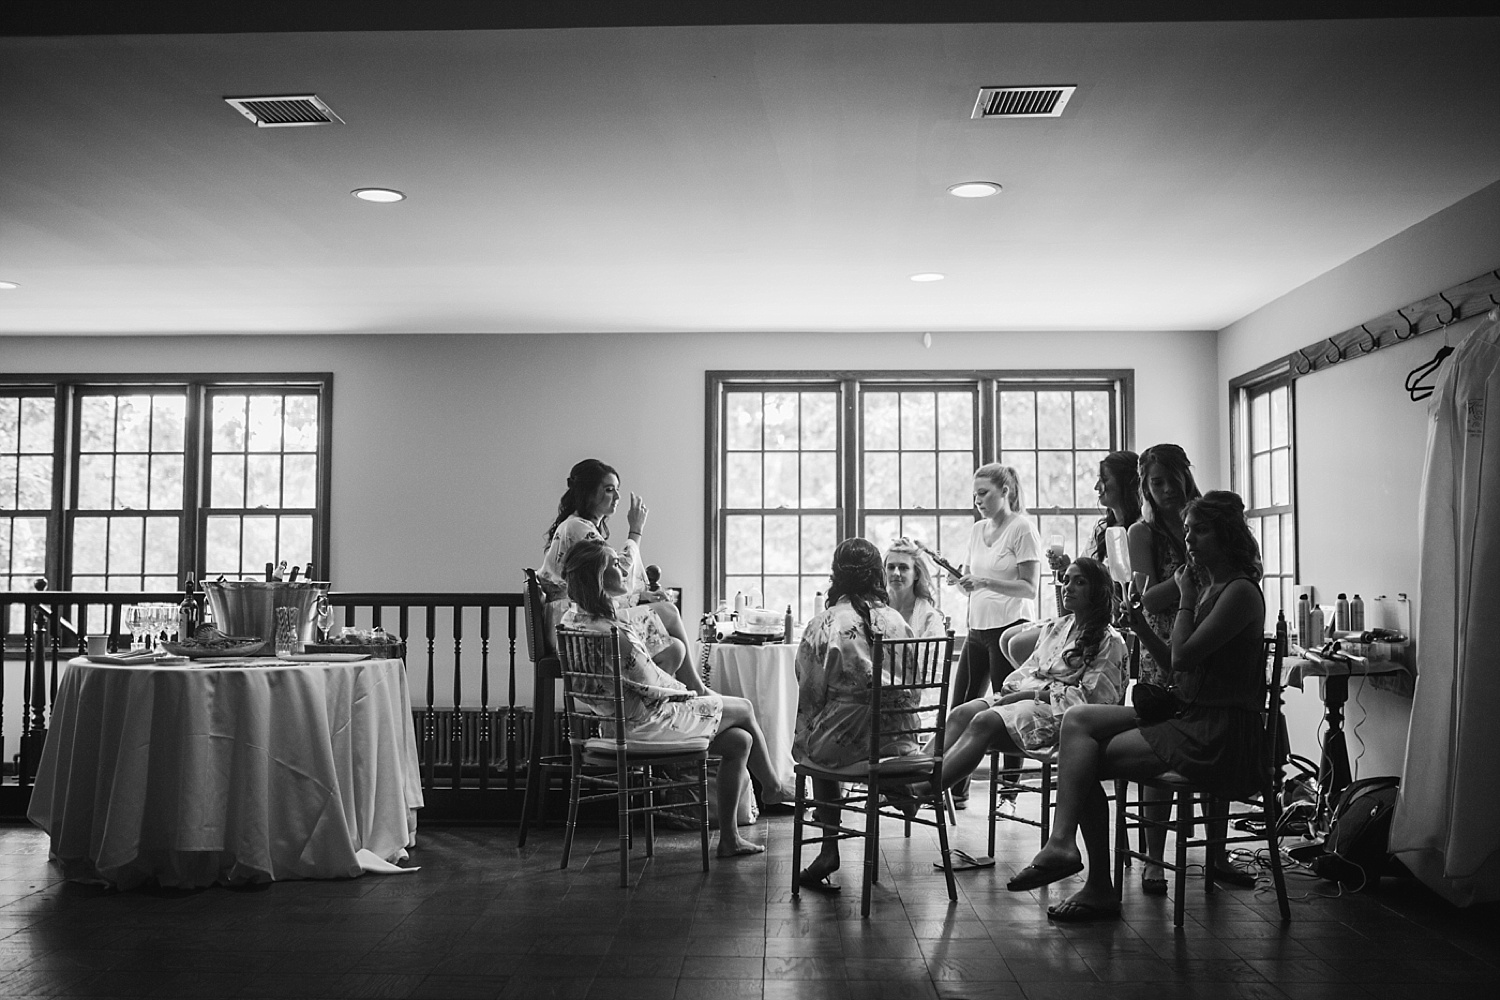 romantic_hotelduvillage_newhope_pennsylvania_wedding_008.jpg